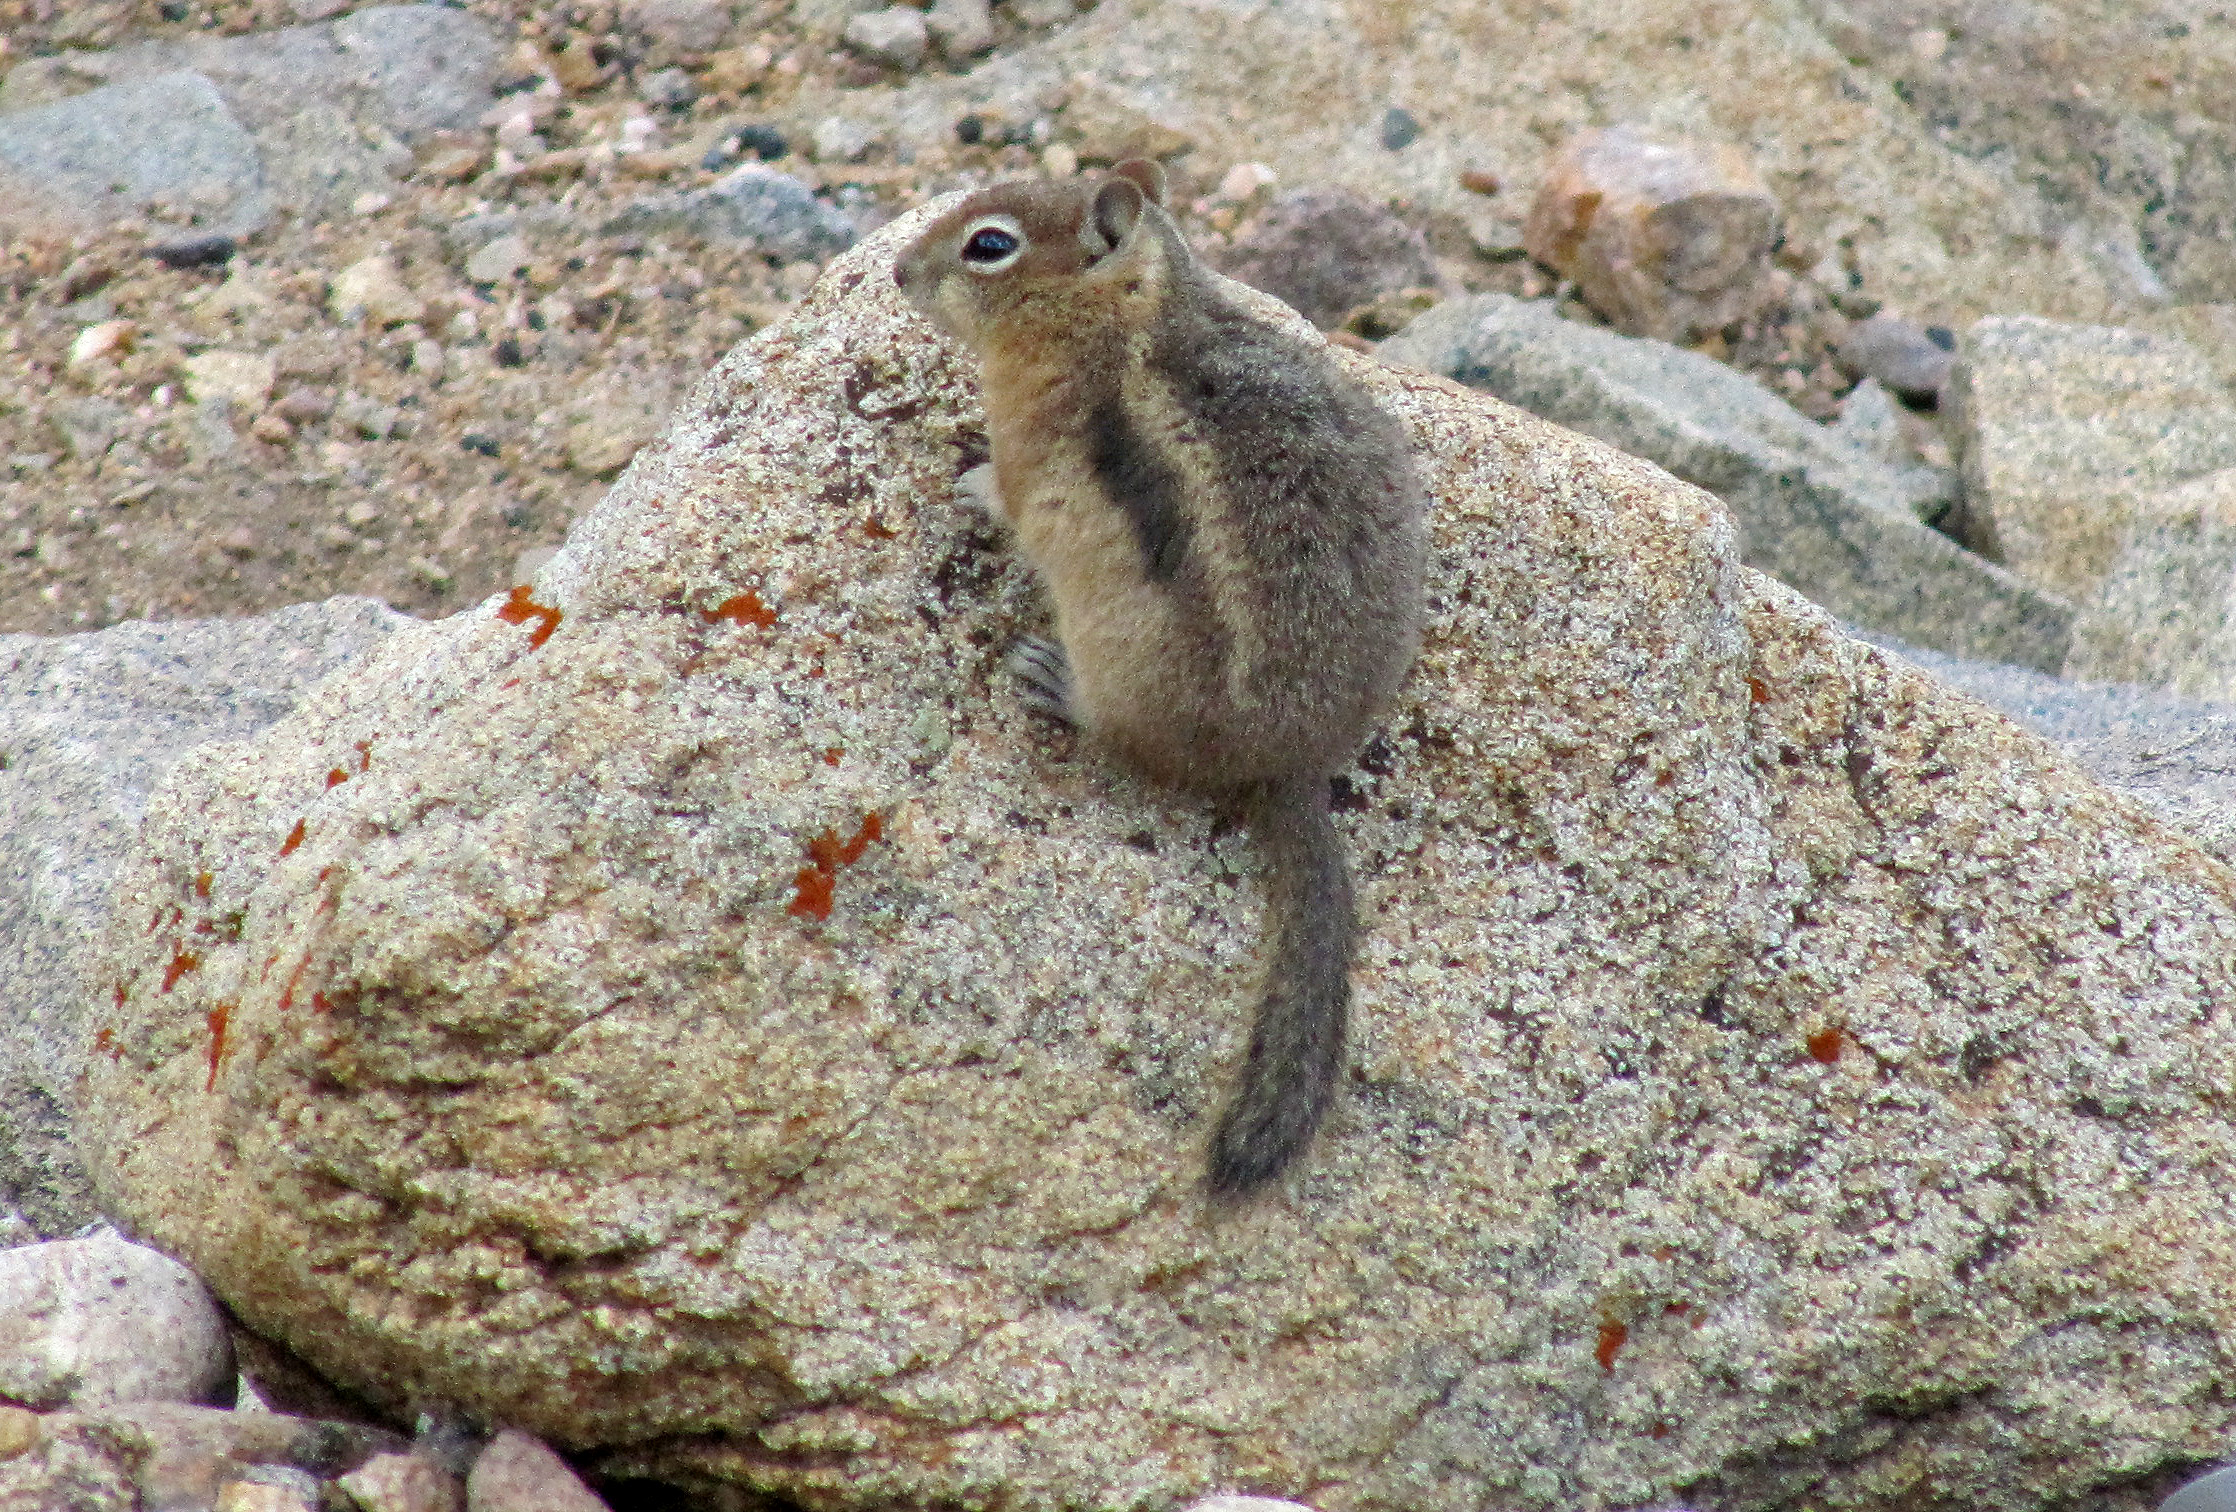 Photos of 2013 page 1 animals golden mantled ground squirrel callospermophilus lateralis was hanging out in the rocks with pikas near rainbow curve in rocky mountain national park sciox Image collections